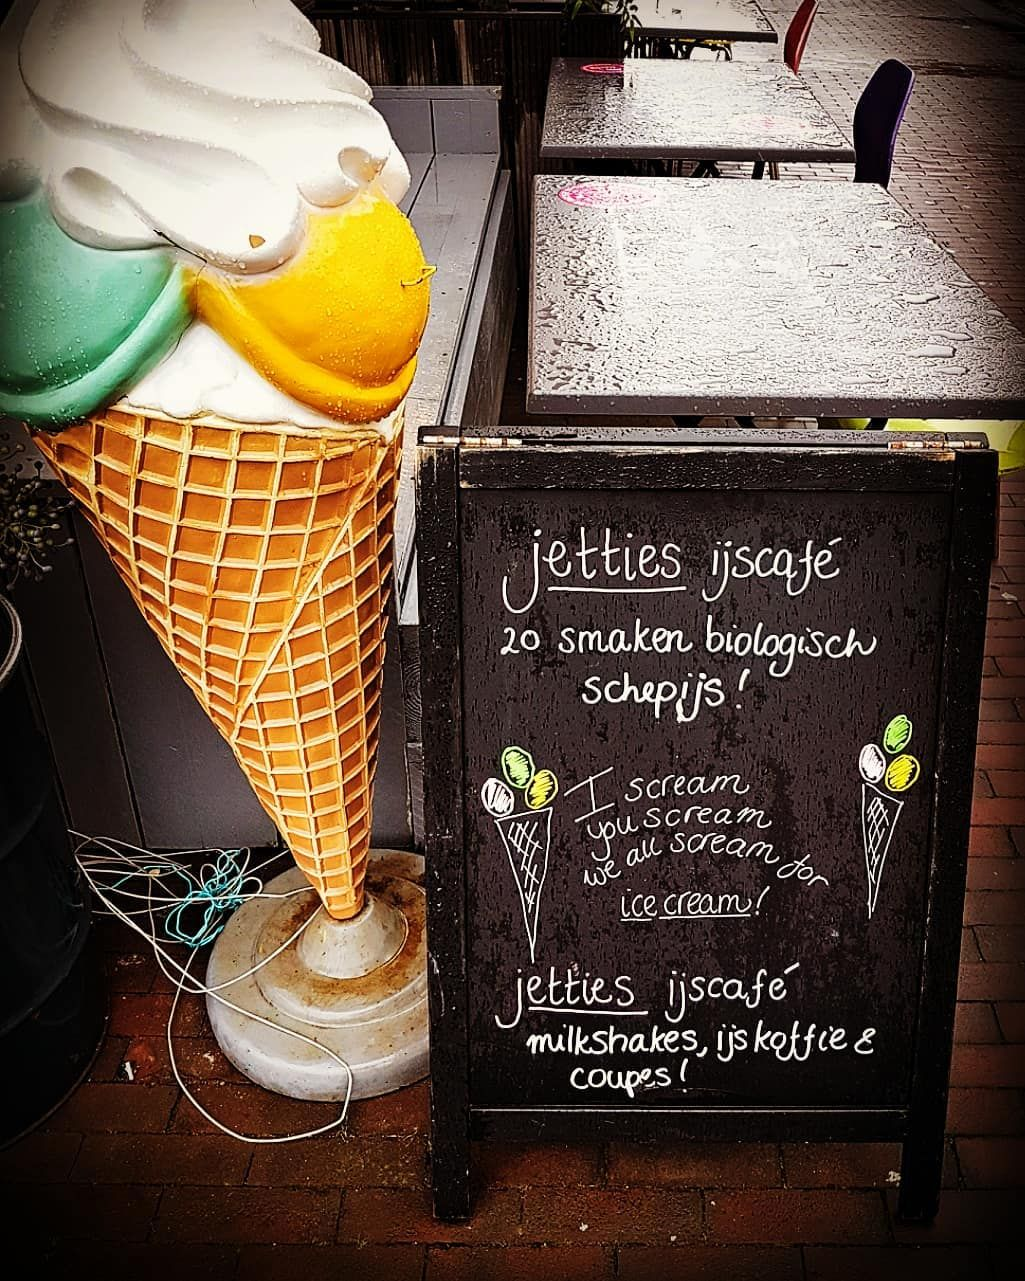 Calling all fans of ice cream let's scream